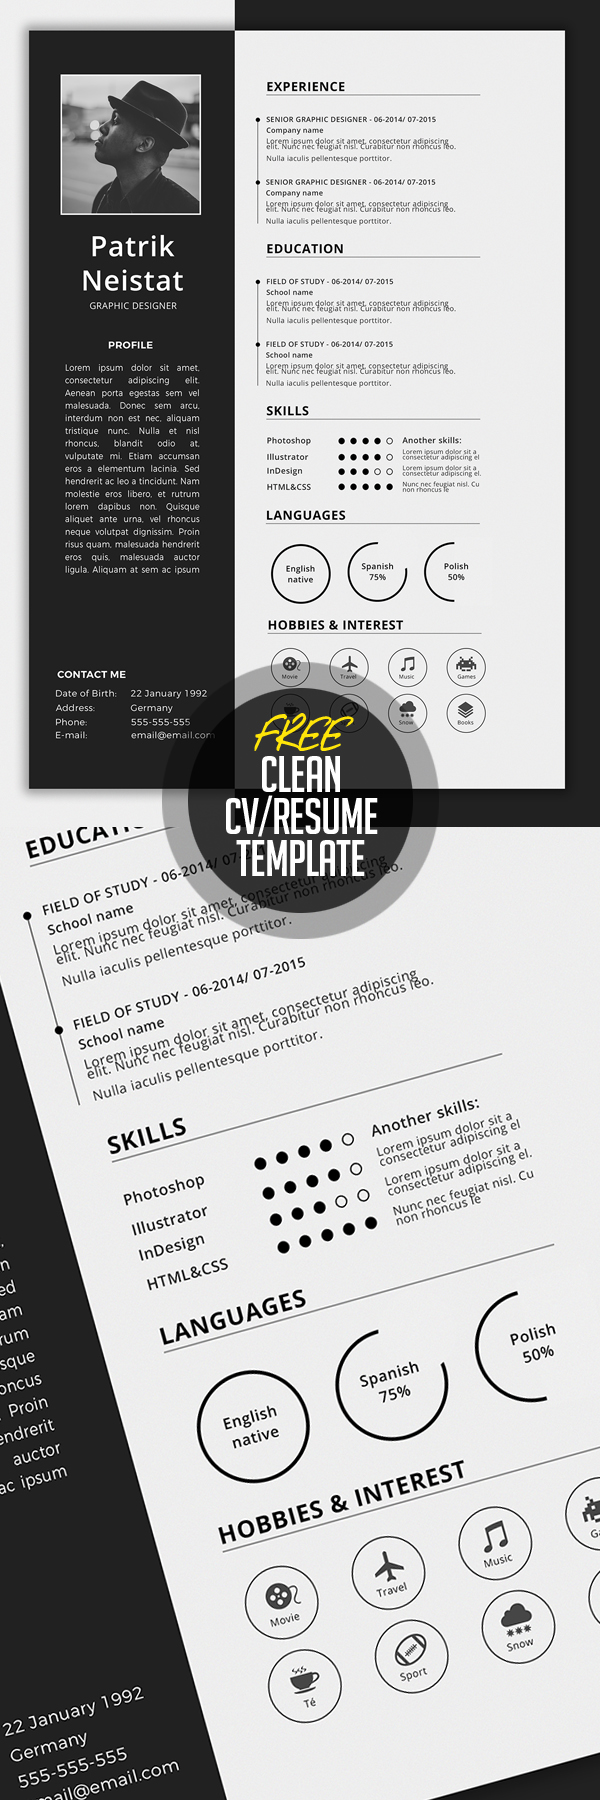 Simple CV/Resume Template Free Download  Pages Resume Templates Free